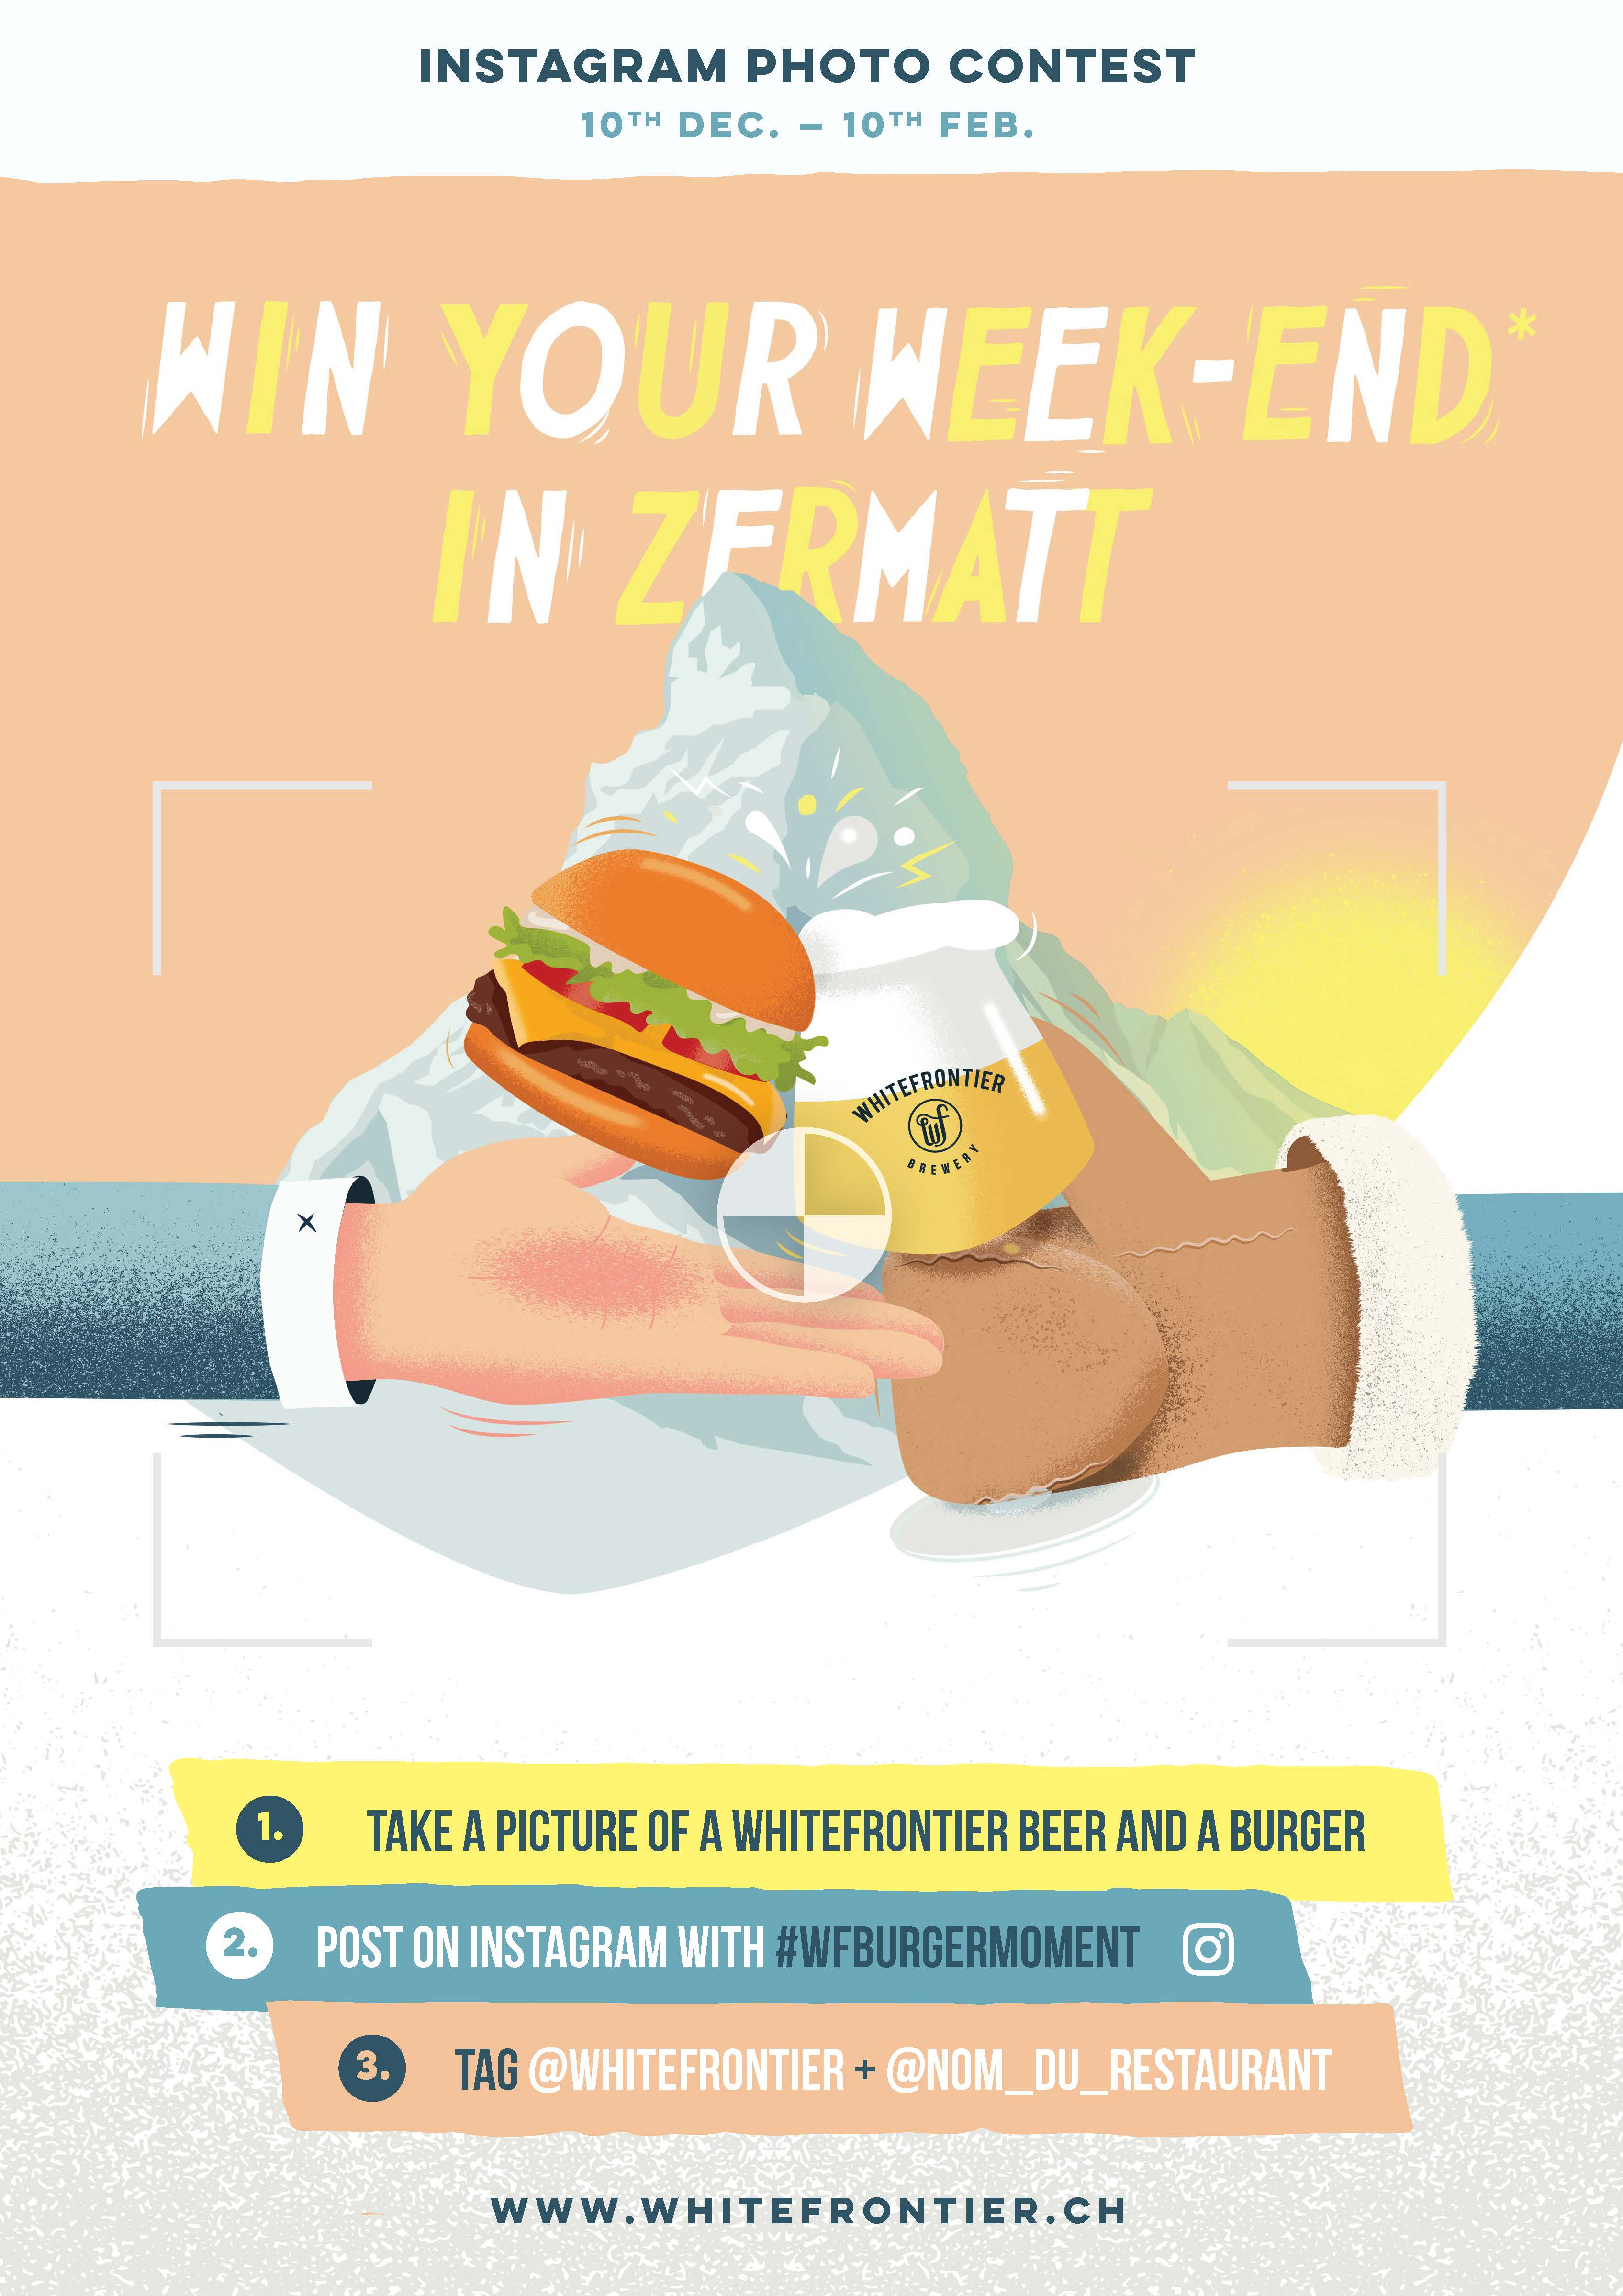 Burger-beer-craftbeer-instagramcontest